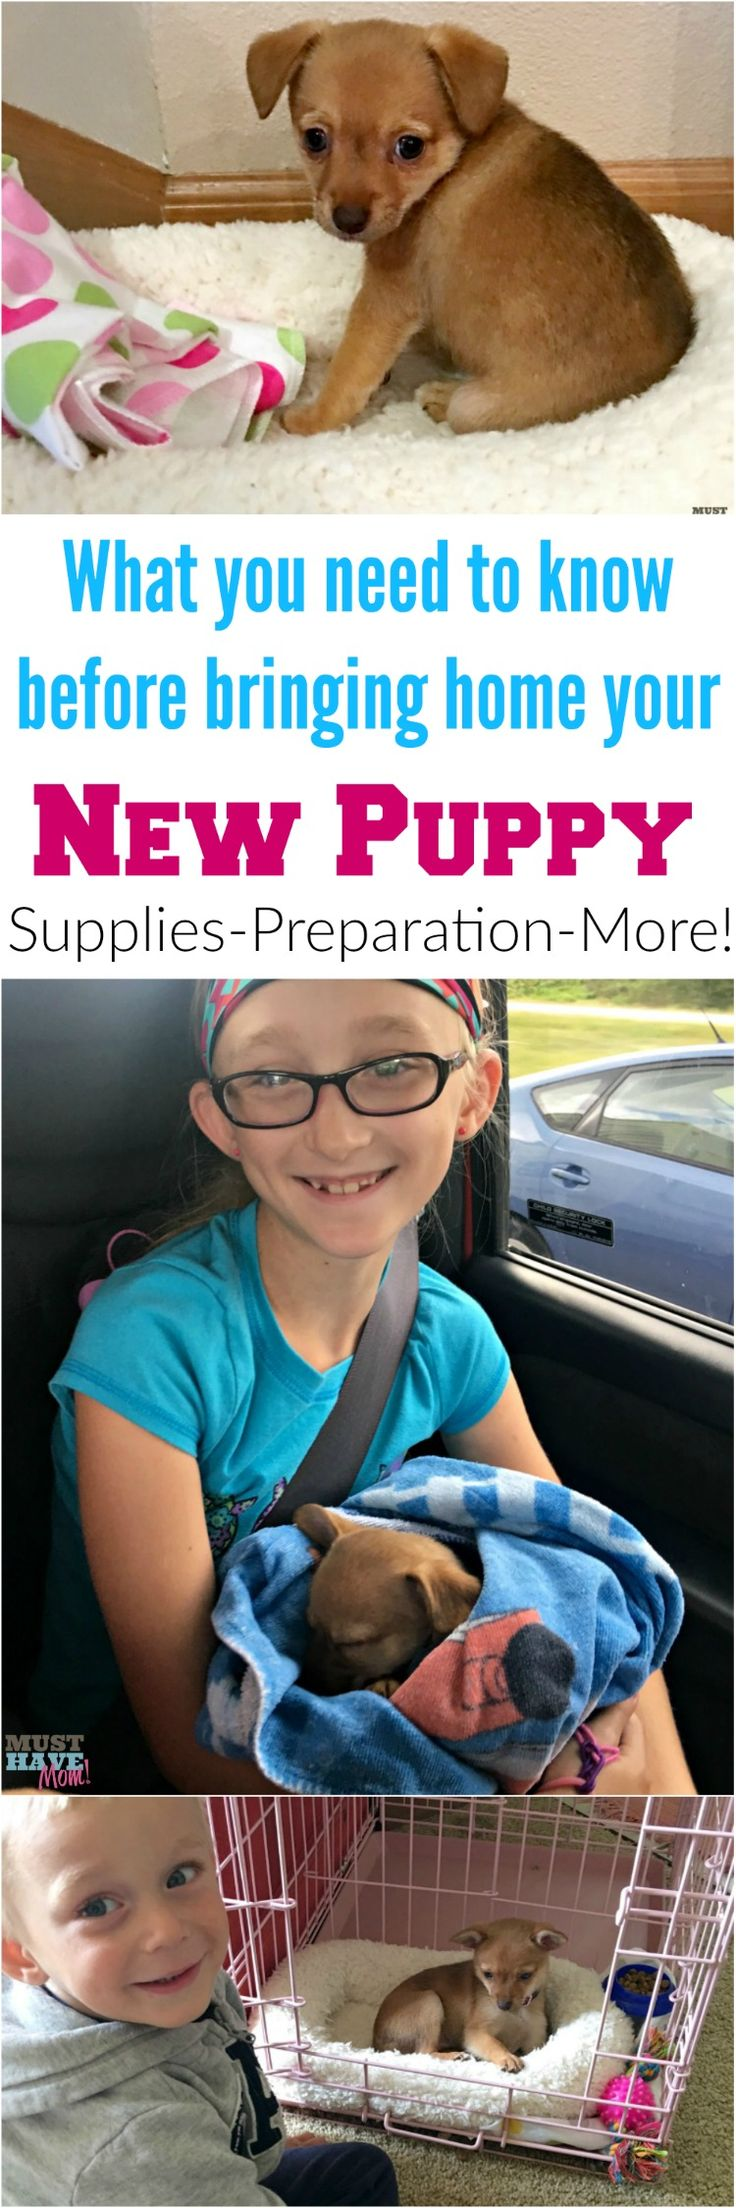 Ultimate guide to bringing home your new puppy! Everything you need to know before you bring home a puppy! Surprising supplies you might have forgot and other must haves you haven't even thought of! Pin for reference later!